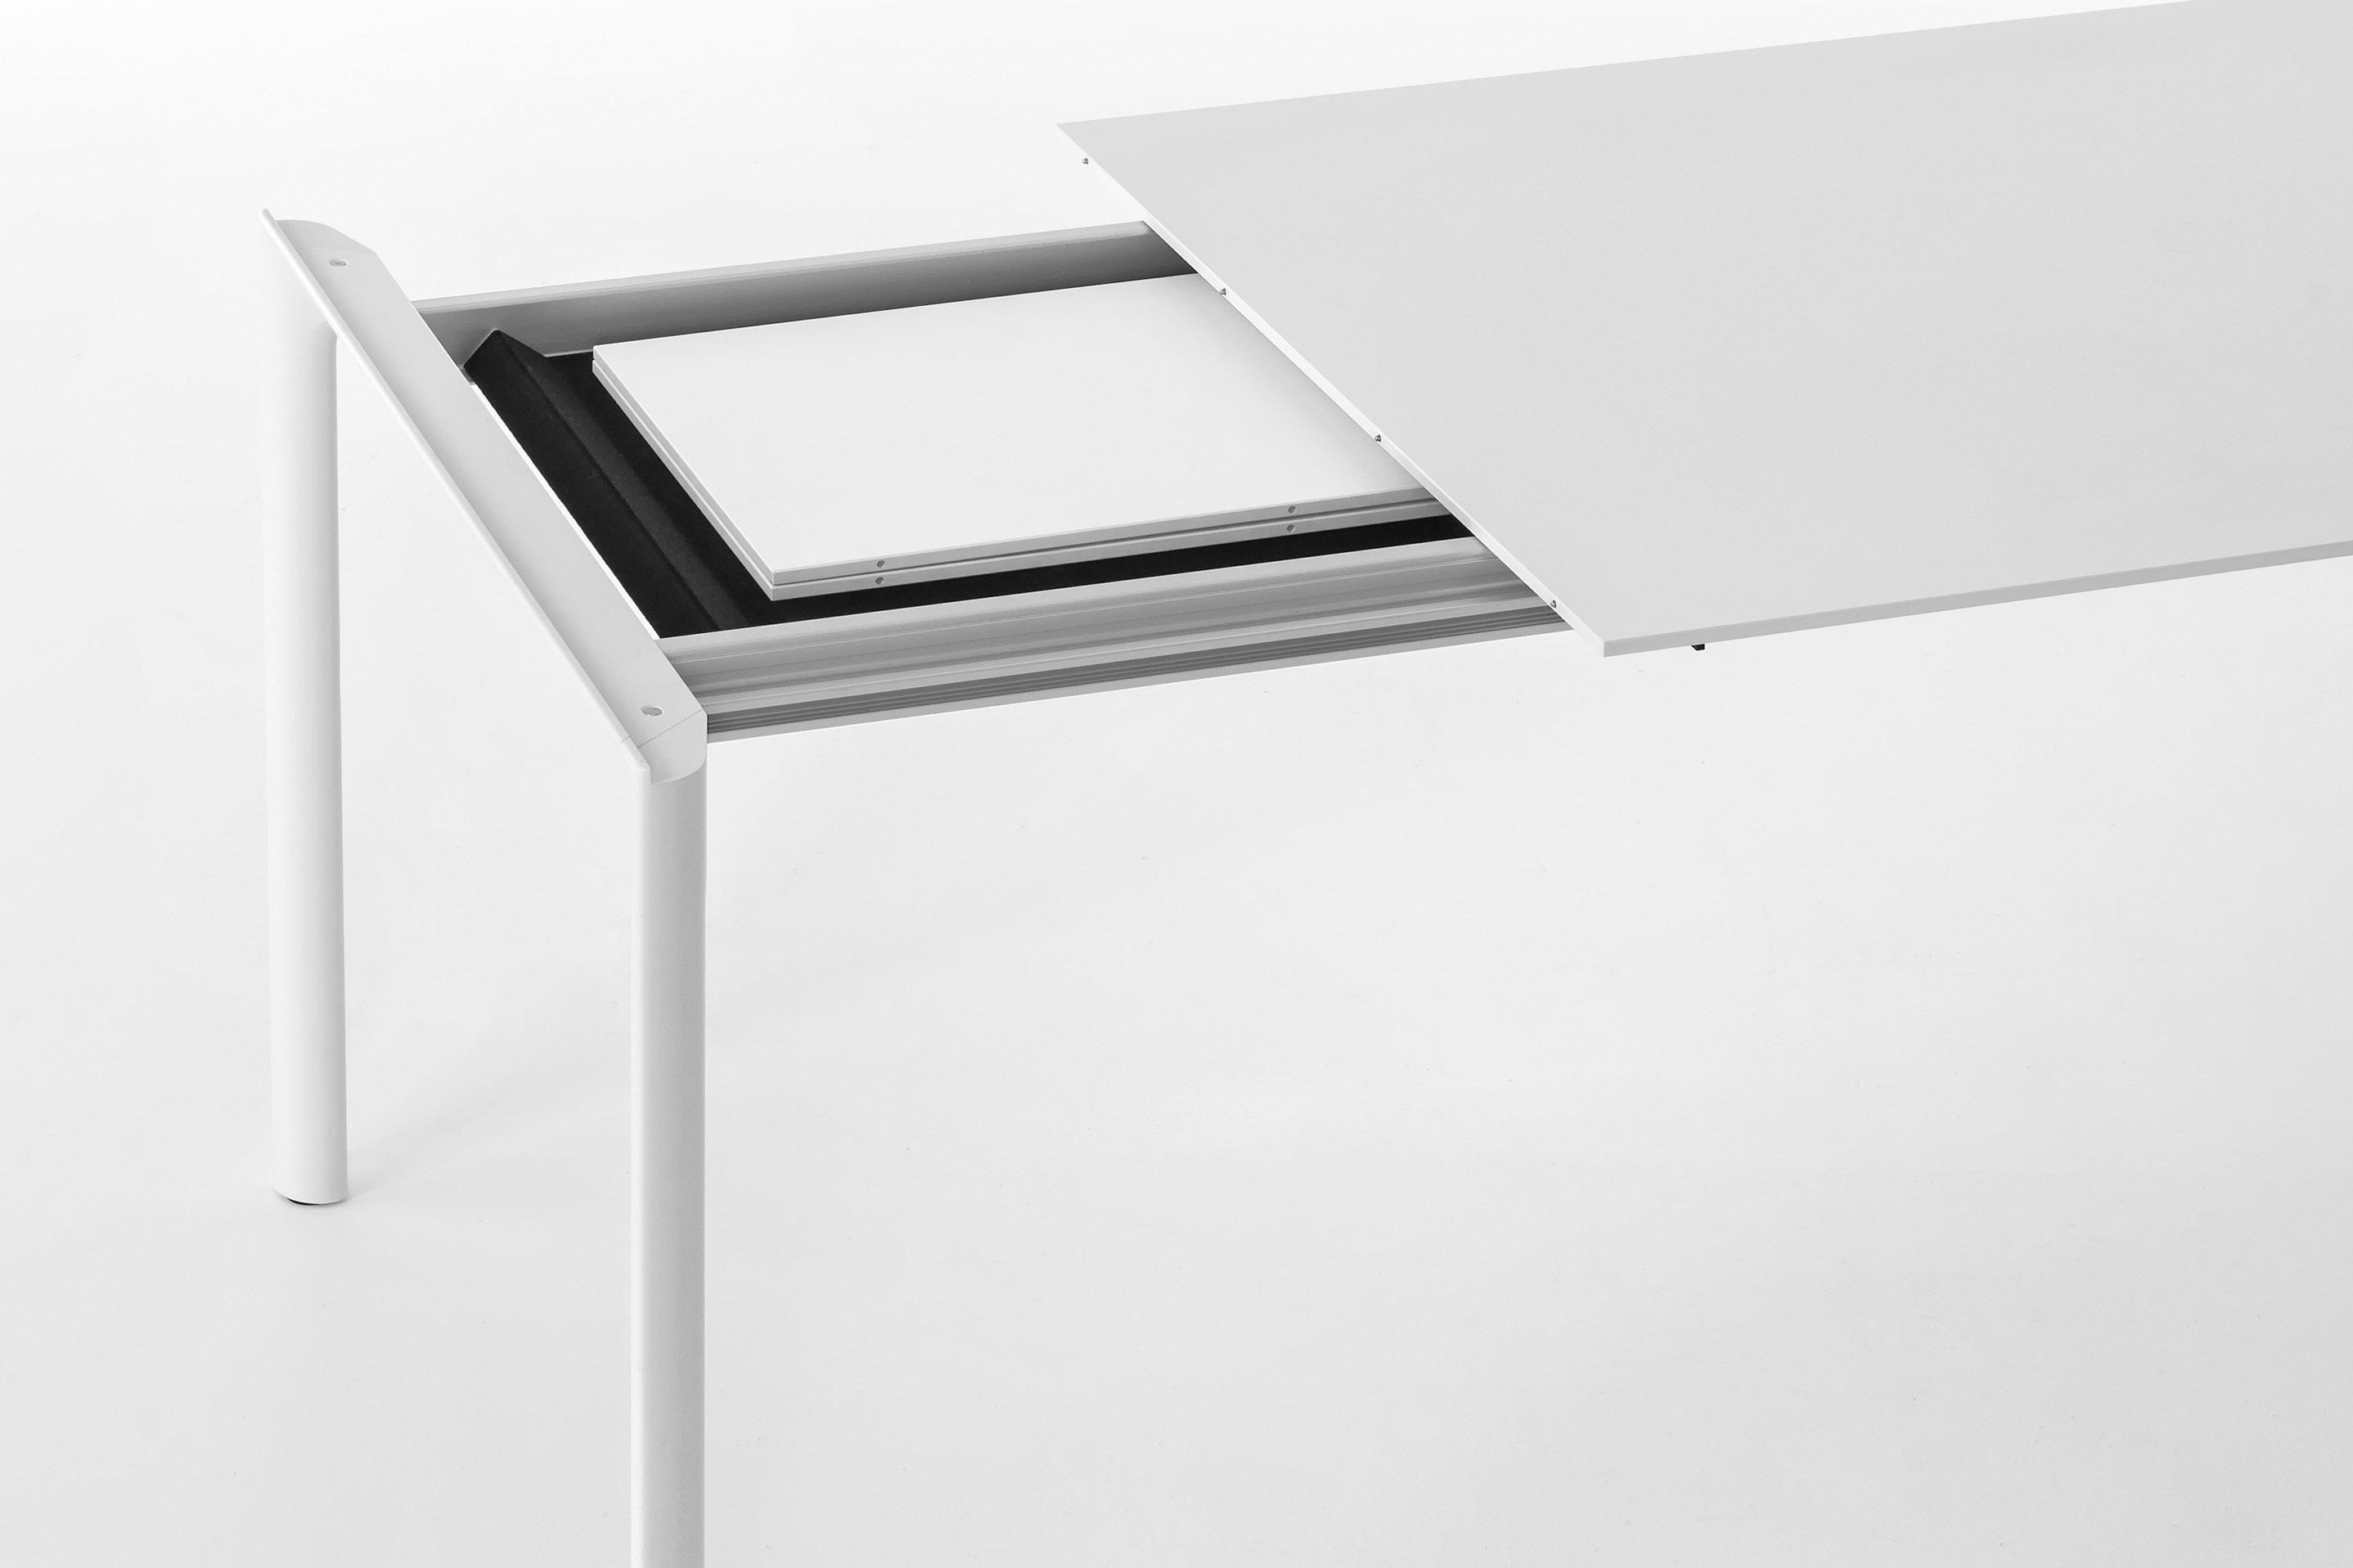 Maki table meeting room tables from kristalia architonic for Table kristalia